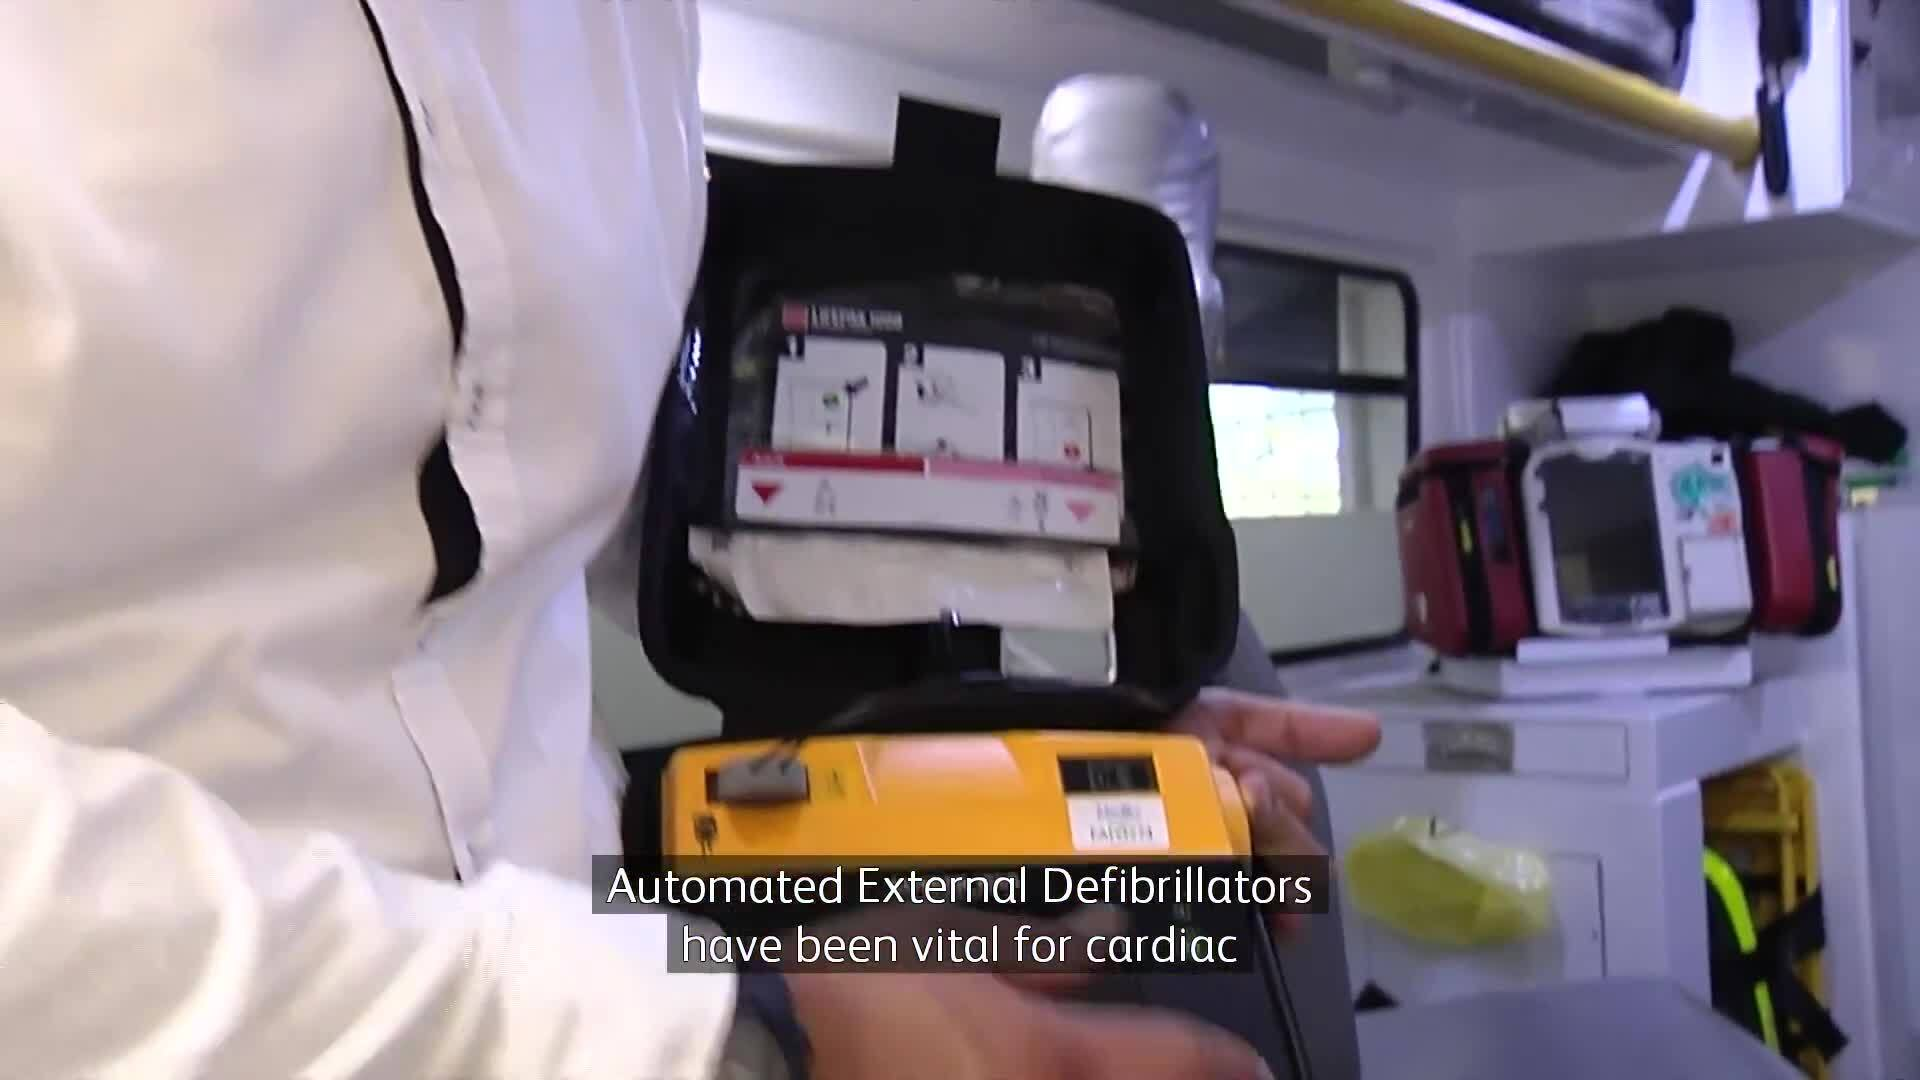 Video for Māori hold highest rates for cardiac arrests